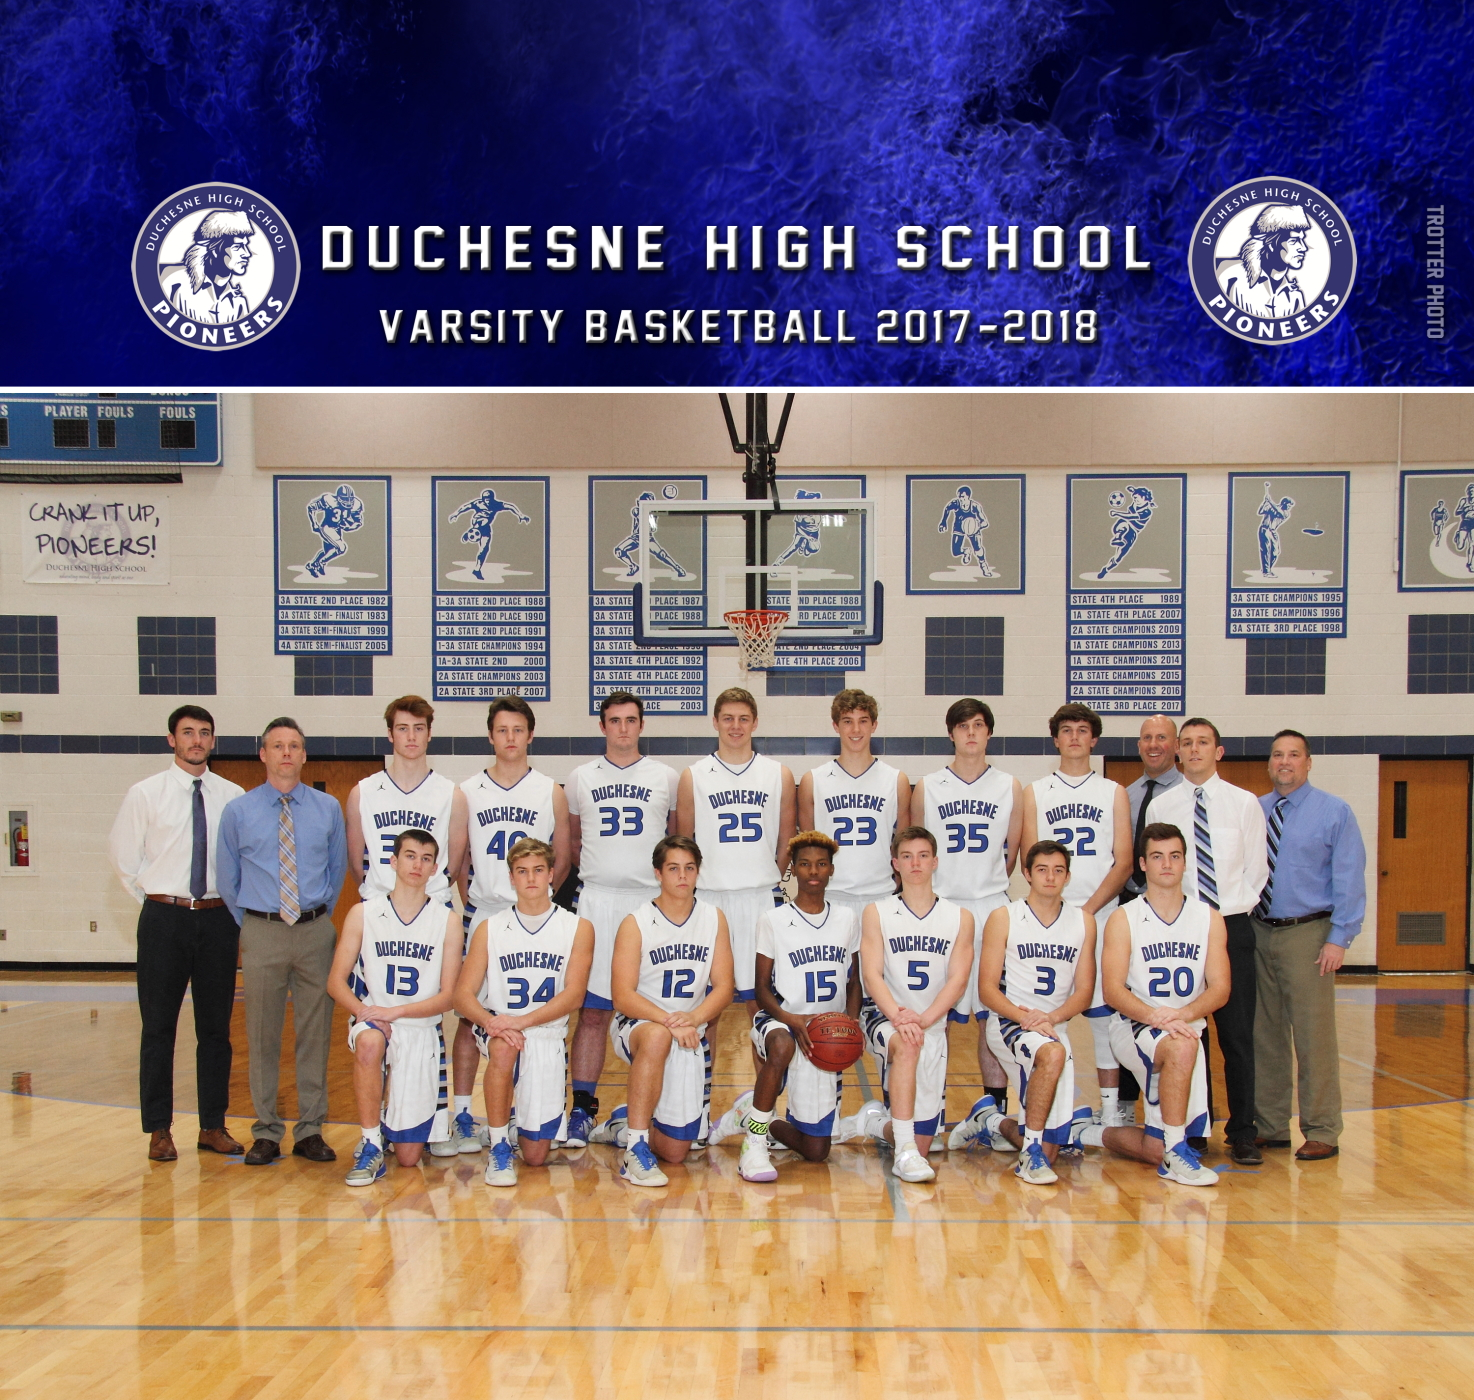 Duchesne High School House Raffle Duchesne High School Boys Basketball